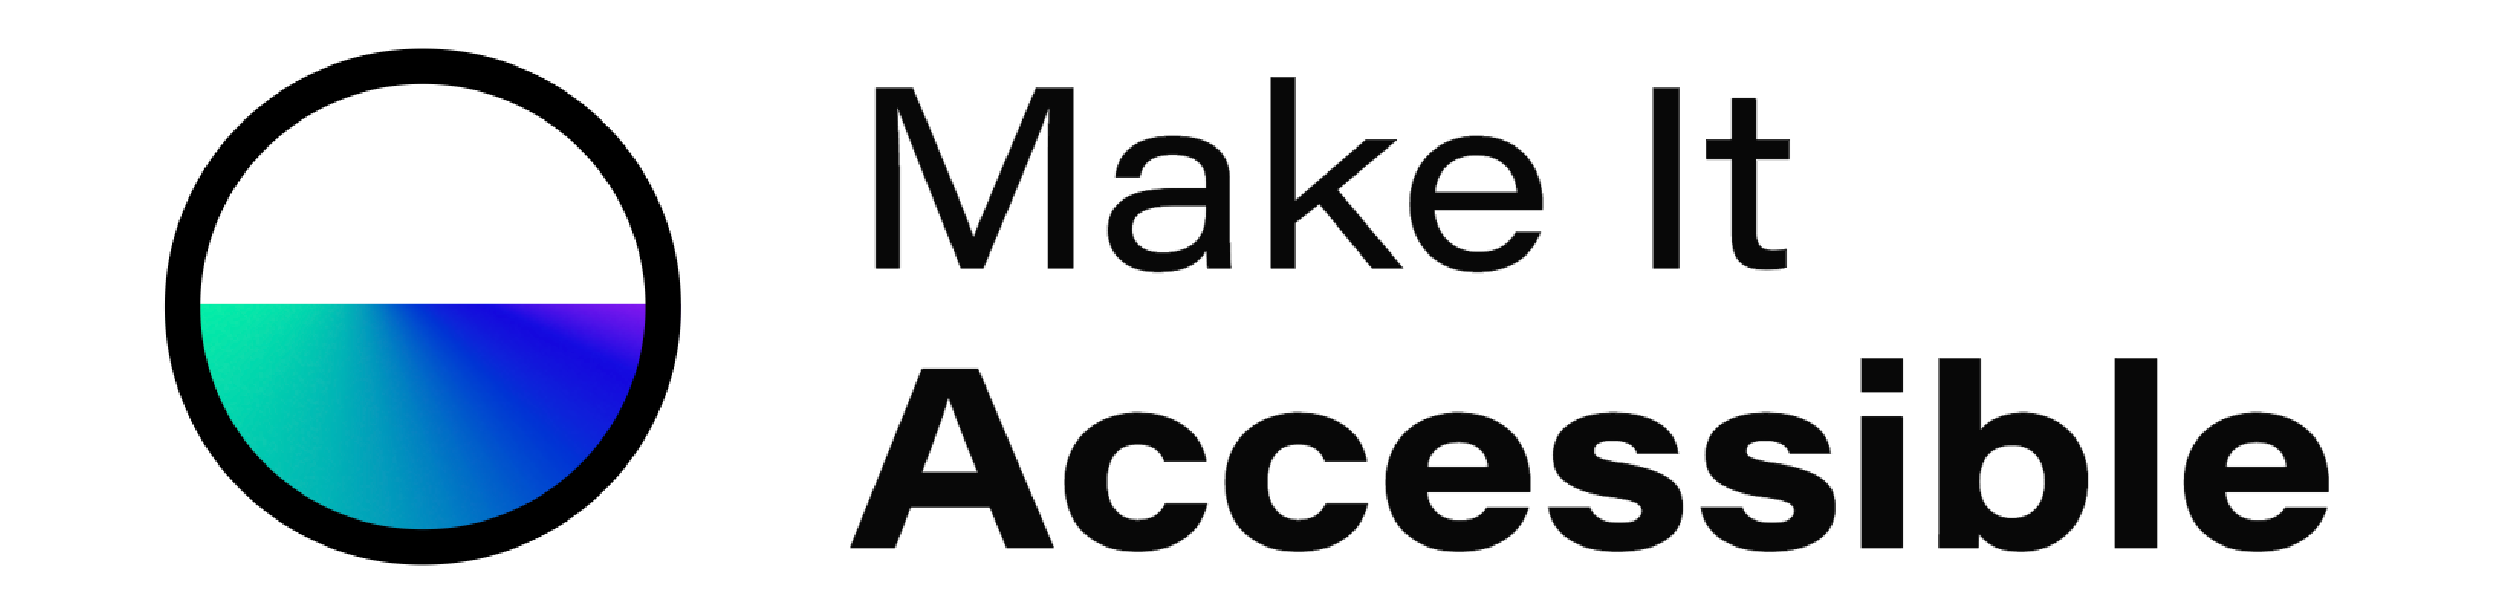 Make It Accessible logo